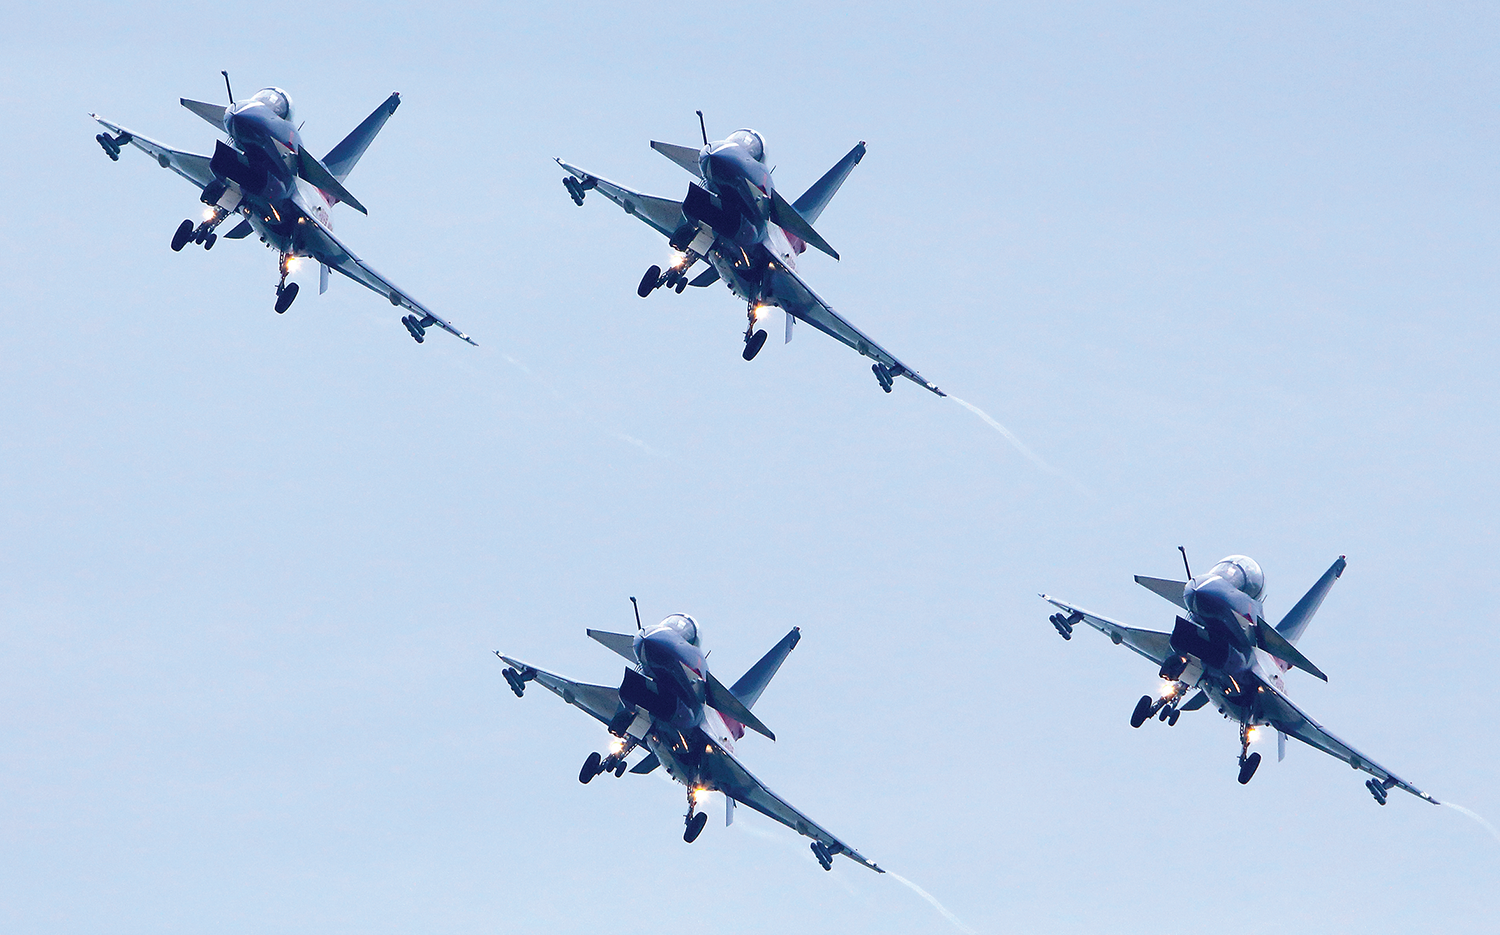 J-10 aircraft, as demonstrated by the Chinese aerobatic team during an airshow